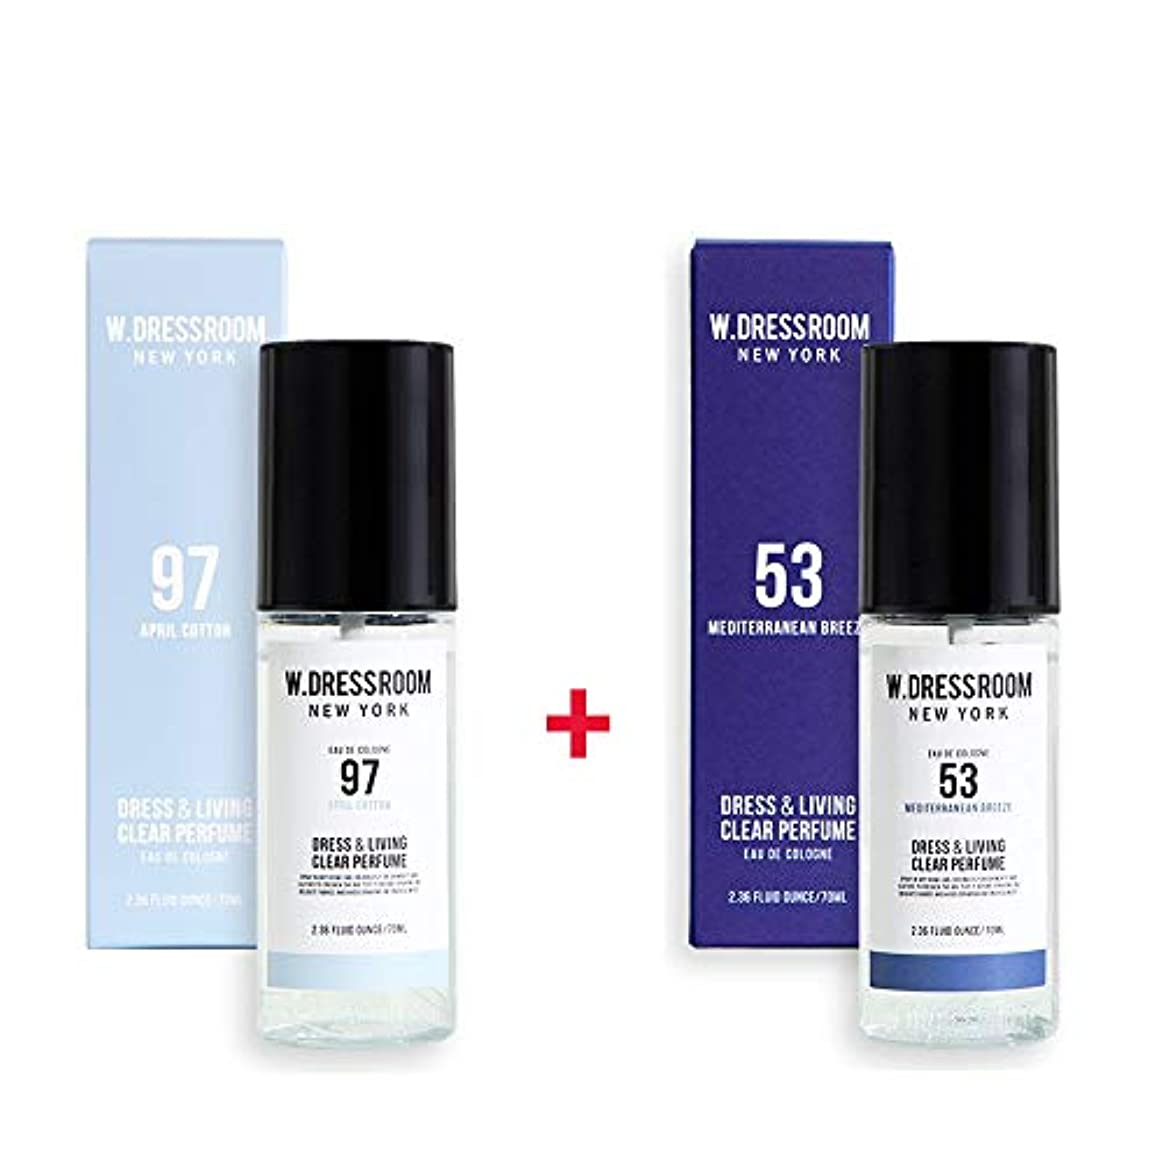 従う戦い週末W.DRESSROOM Dress & Living Clear Perfume 70ml (No 97 April Cotton)+(No 53 Mediterranean Breeze)